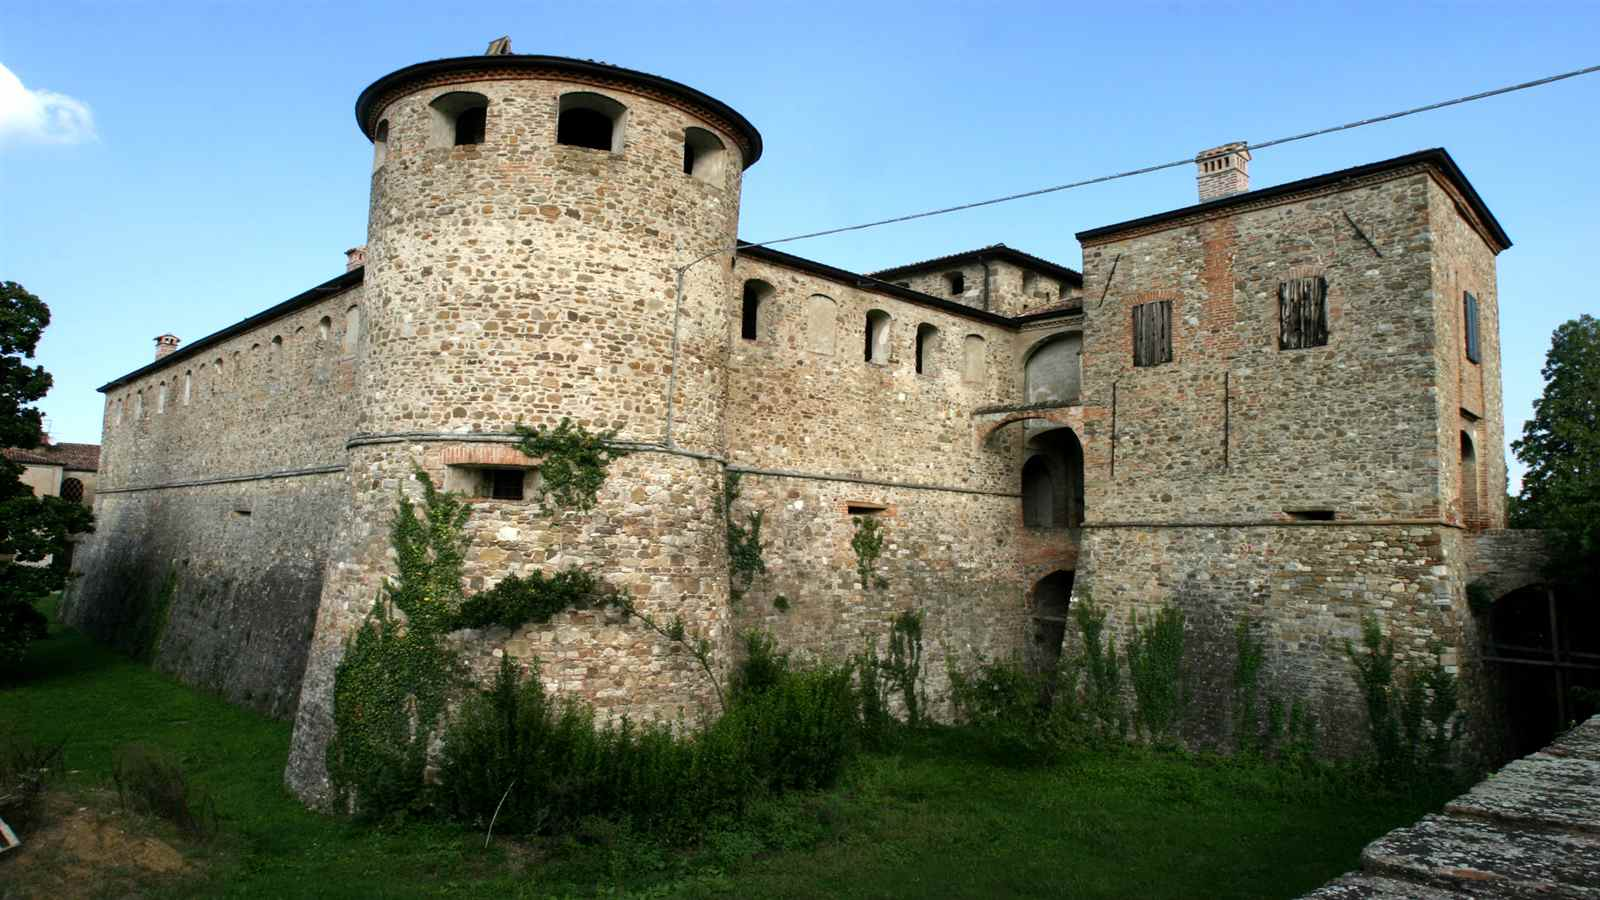 Haunted Castle of Agazzano